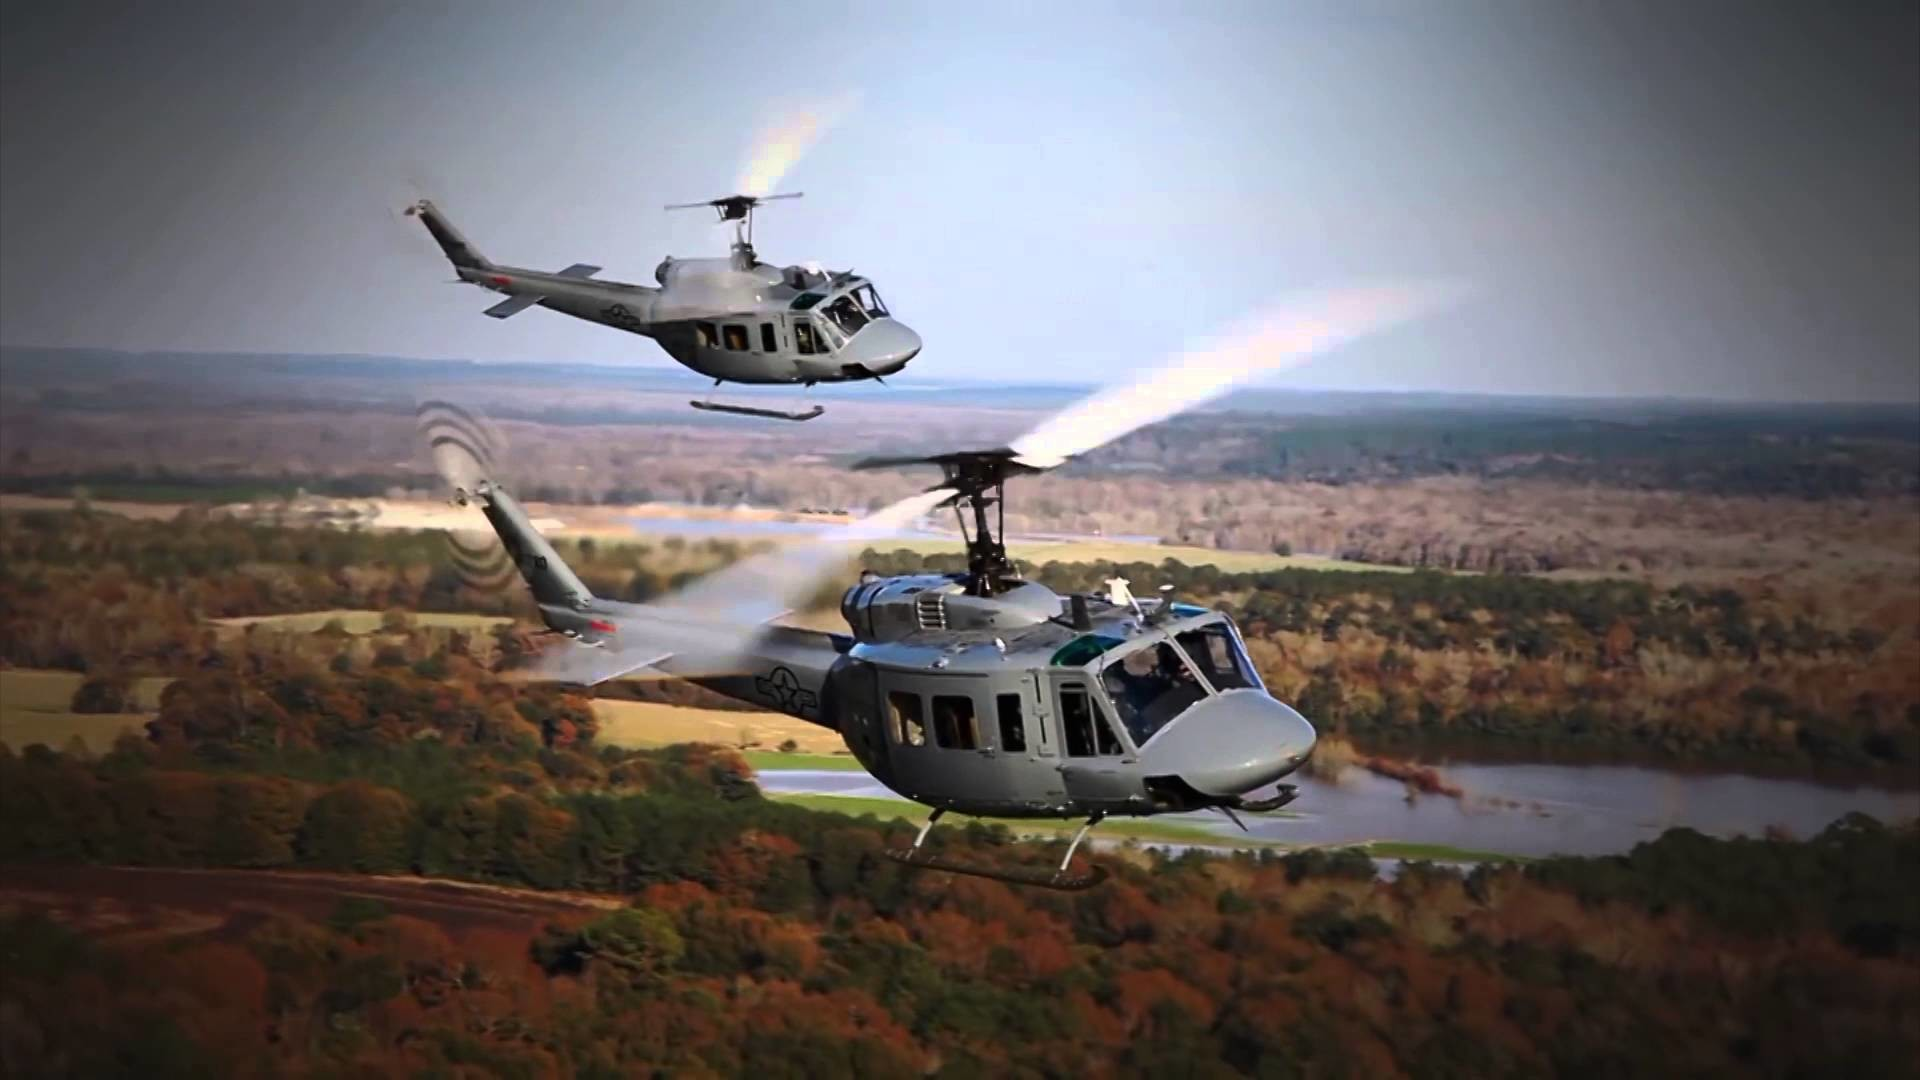 Res: 1920x1080, United States Constructing A Hangar For 5 UH-1H Huey II Helicopters Given  To Uganda